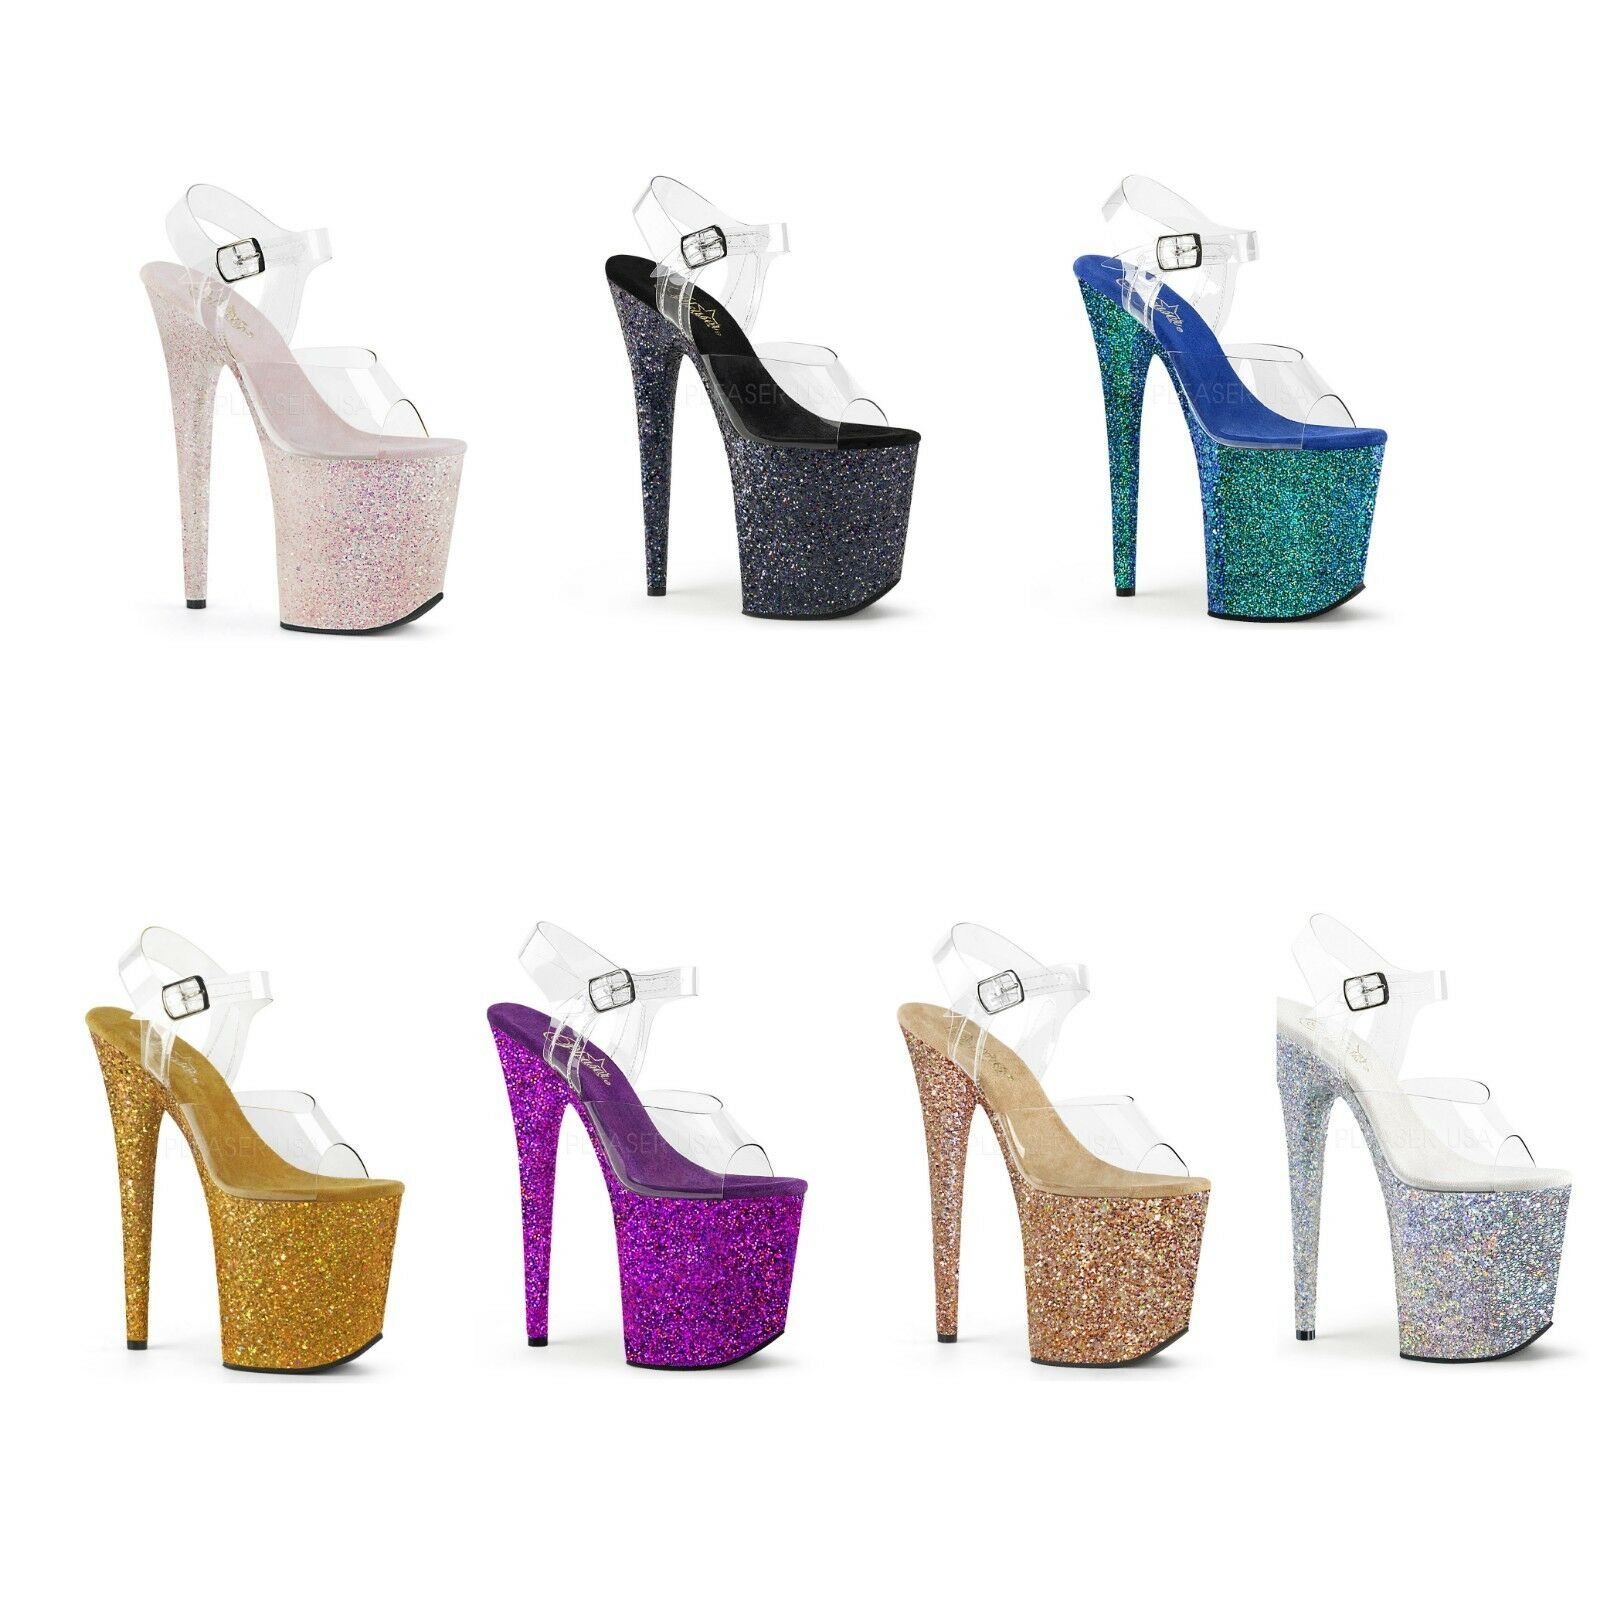 Pleaser FLAMINGO-808LG FLAMINGO-808LG FLAMINGO-808LG Platform Ankle Strap Sandal Holographic Glitters e1cafc